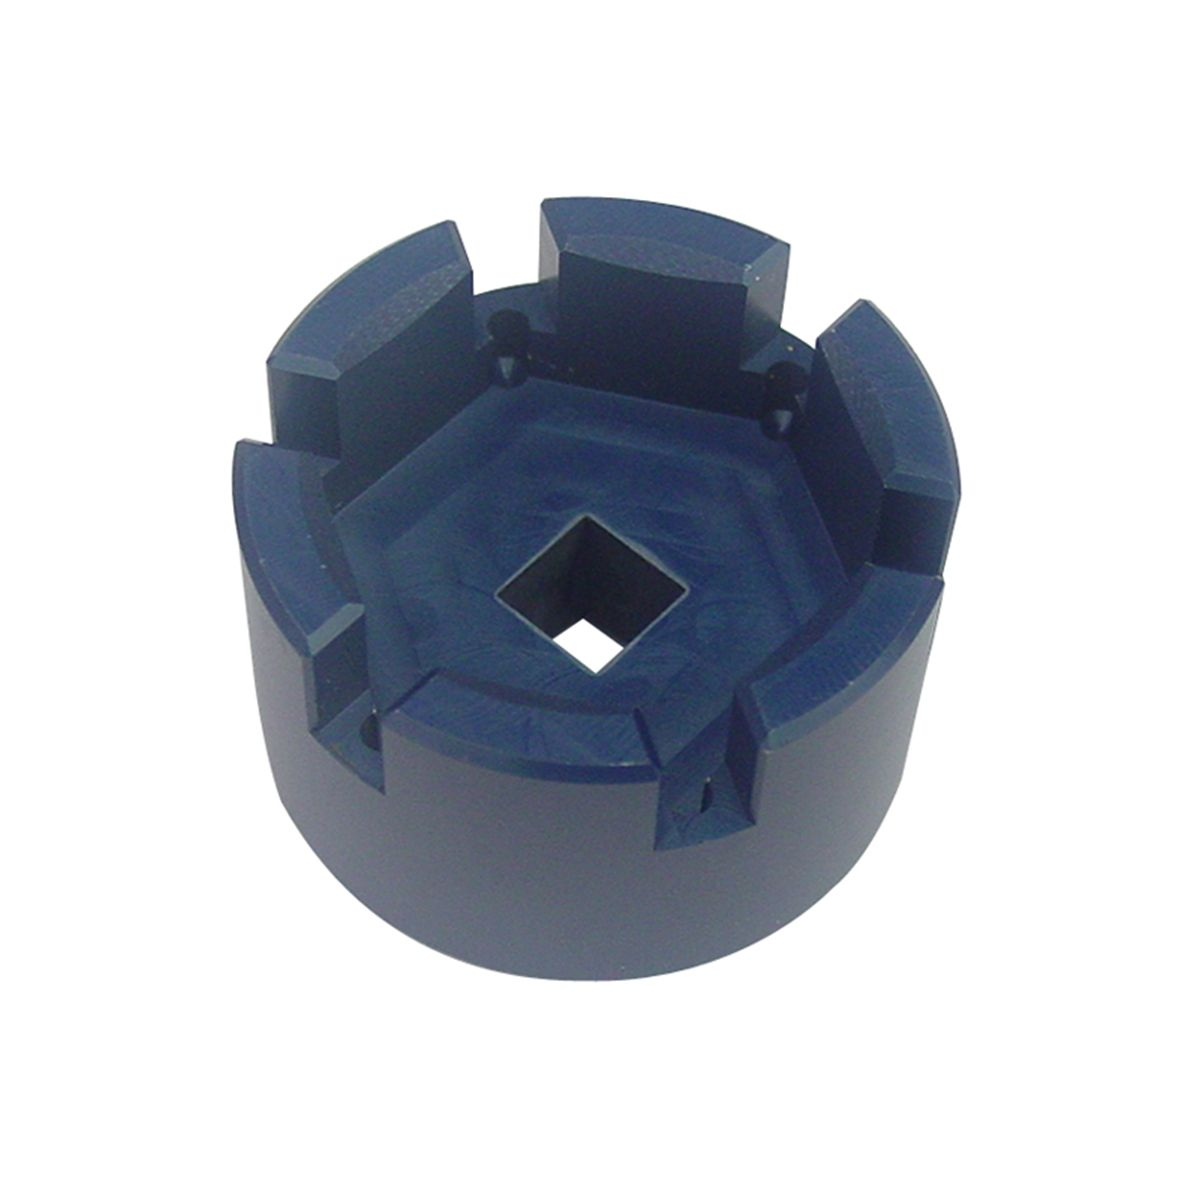 hight resolution of 3 8 inch drive dual ford fuel filter cap tool